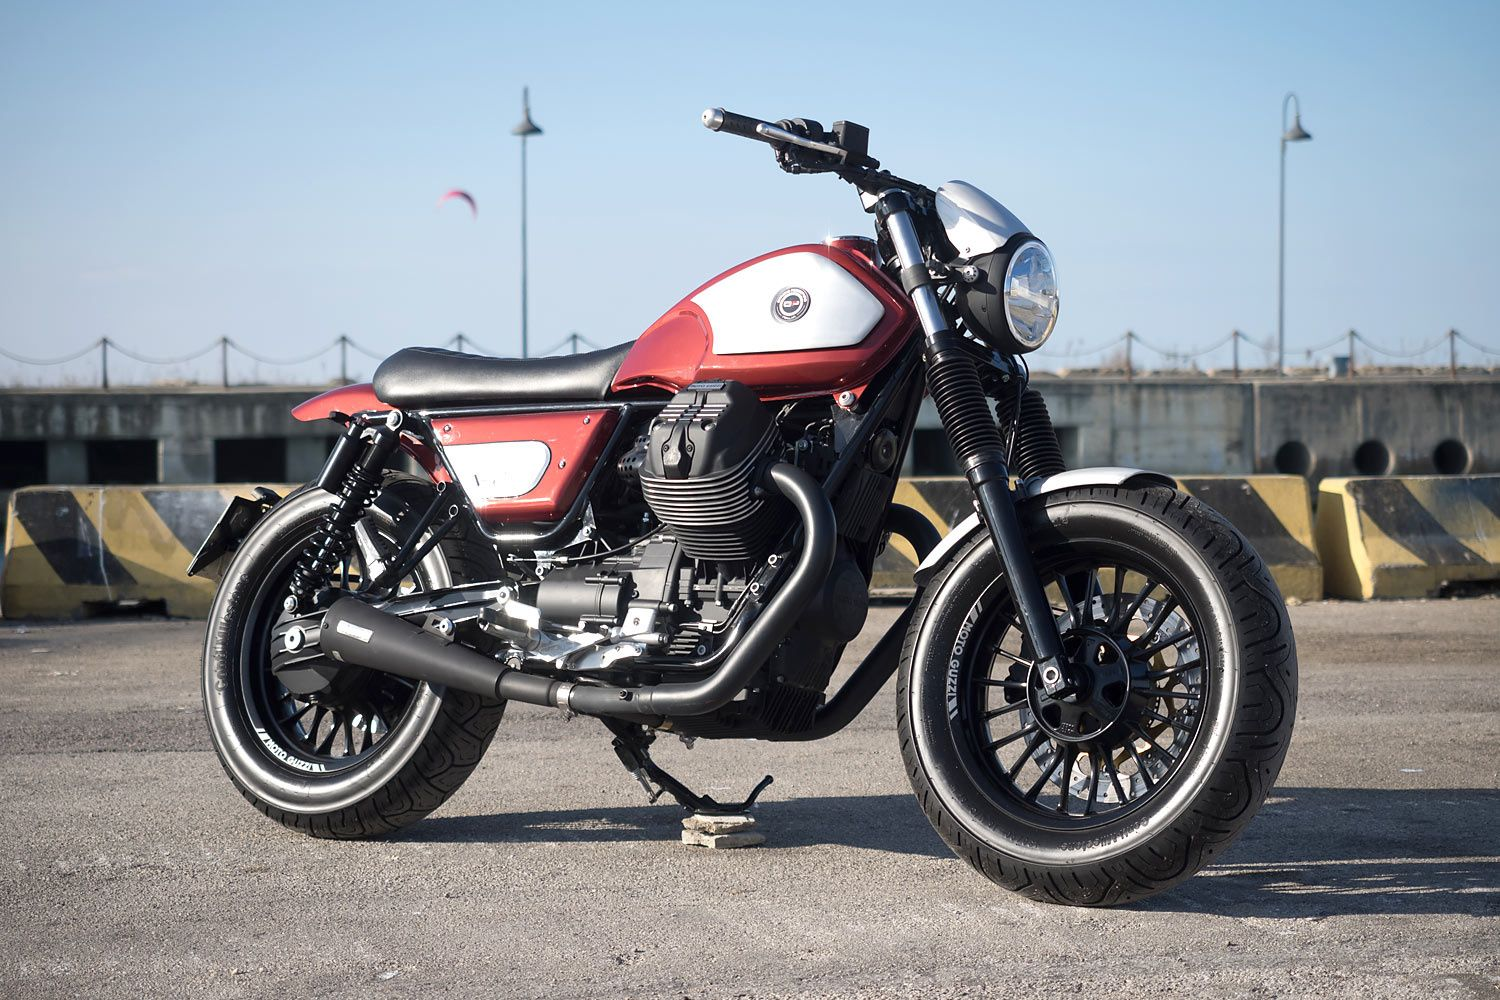 2020 Bmw Bobber 4x4 Research New From Moto Guzzi 2019 2019 2020